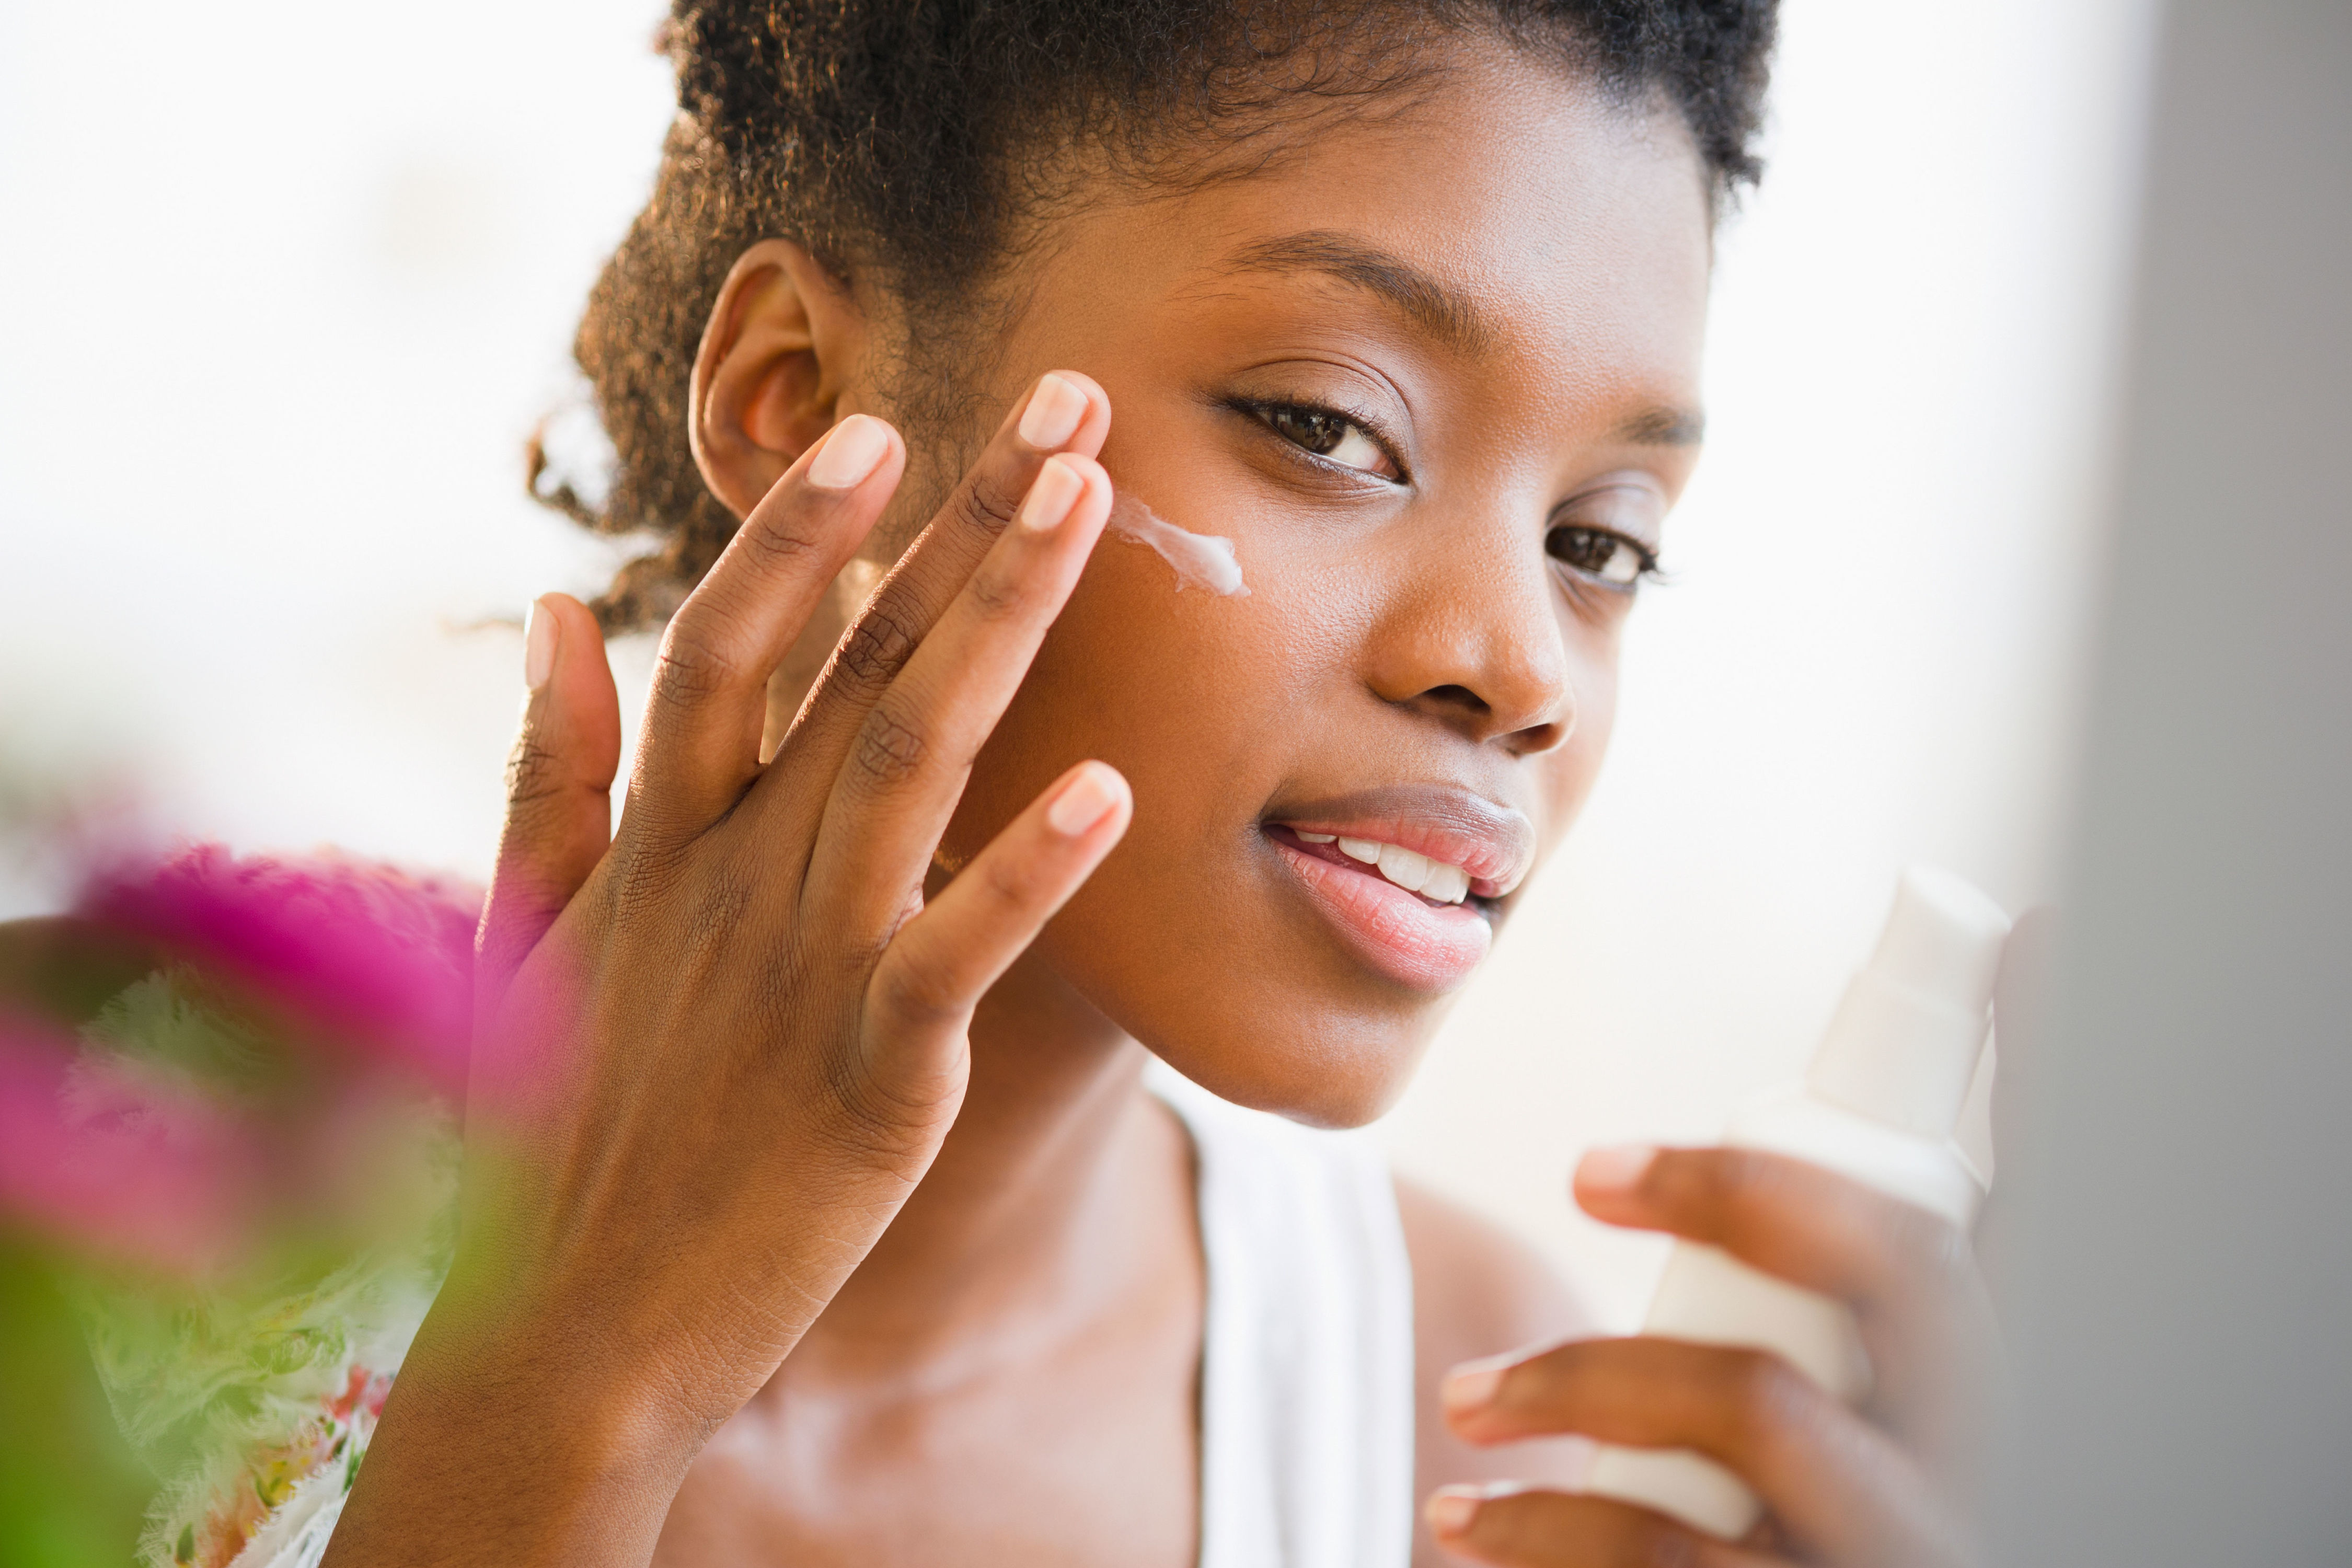 This Anti-Aging Face Cream Is So Popular, Over 1 Billion Jars of It Have Been Sold